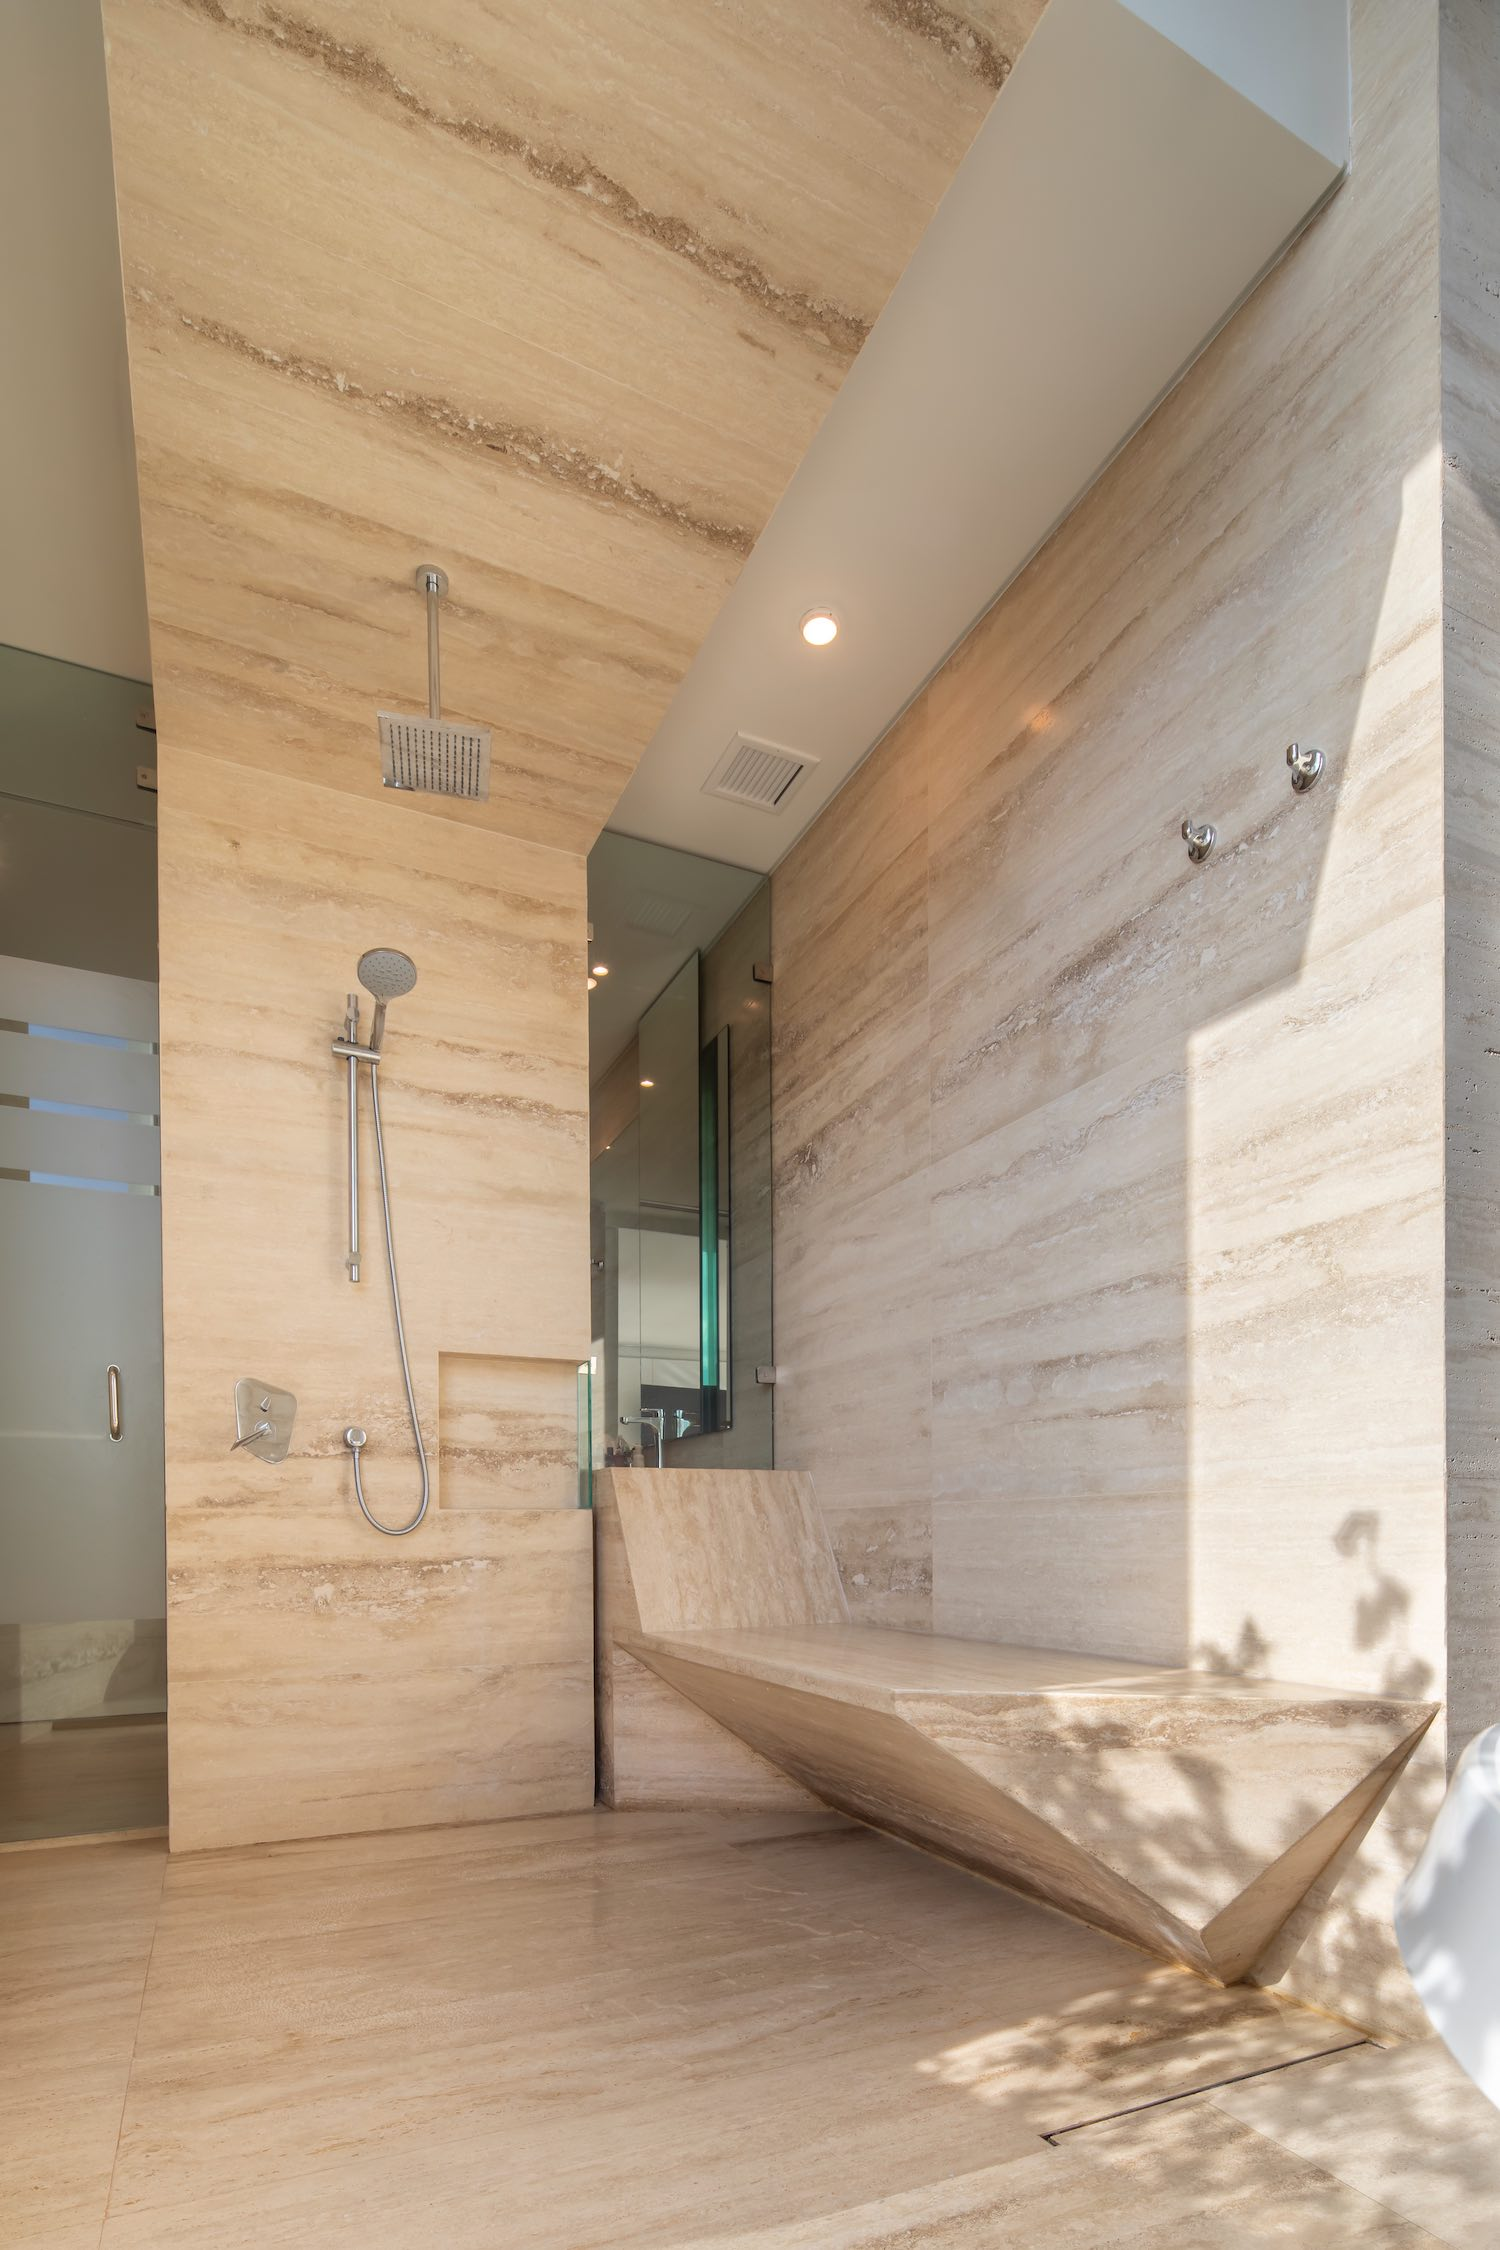 bathroom shower and marble stones walls and floor